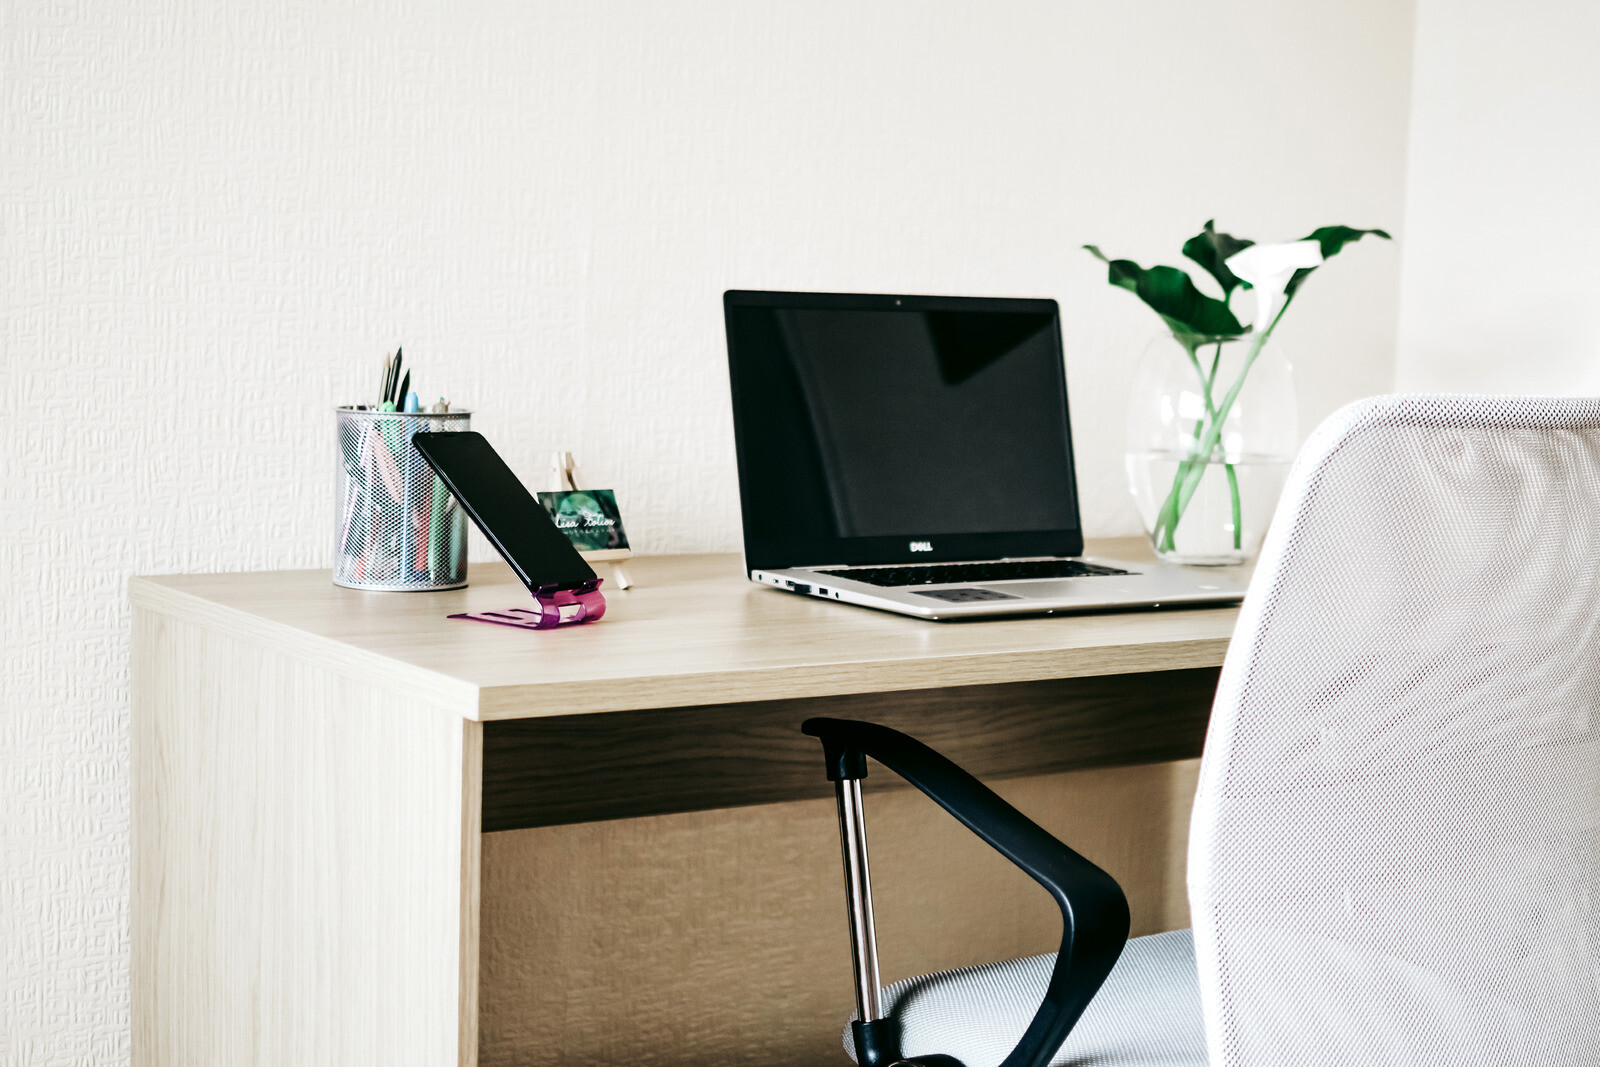 home-office-desk-to-focus-on-business-development-for-email-marketing